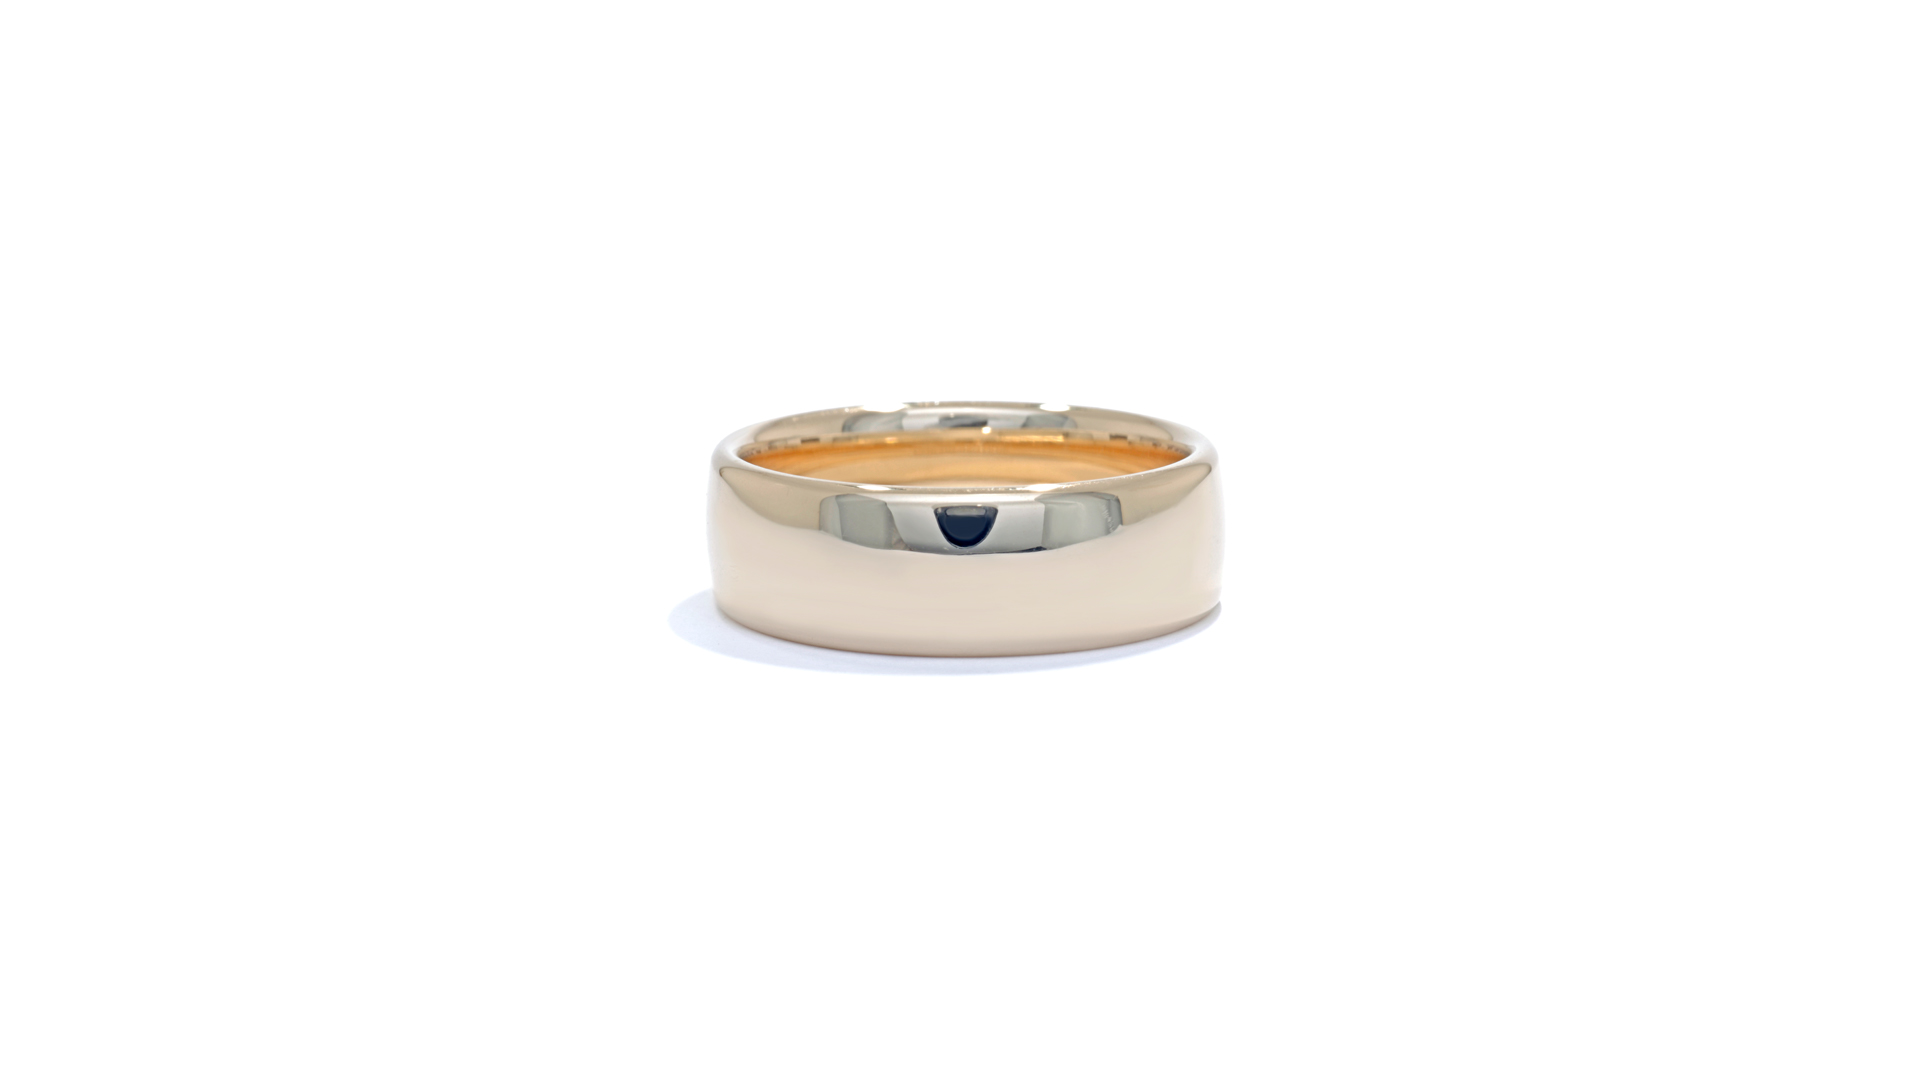 ja9269 - Comfort Fit 14k Yellow Gold Band at Ascot Diamonds